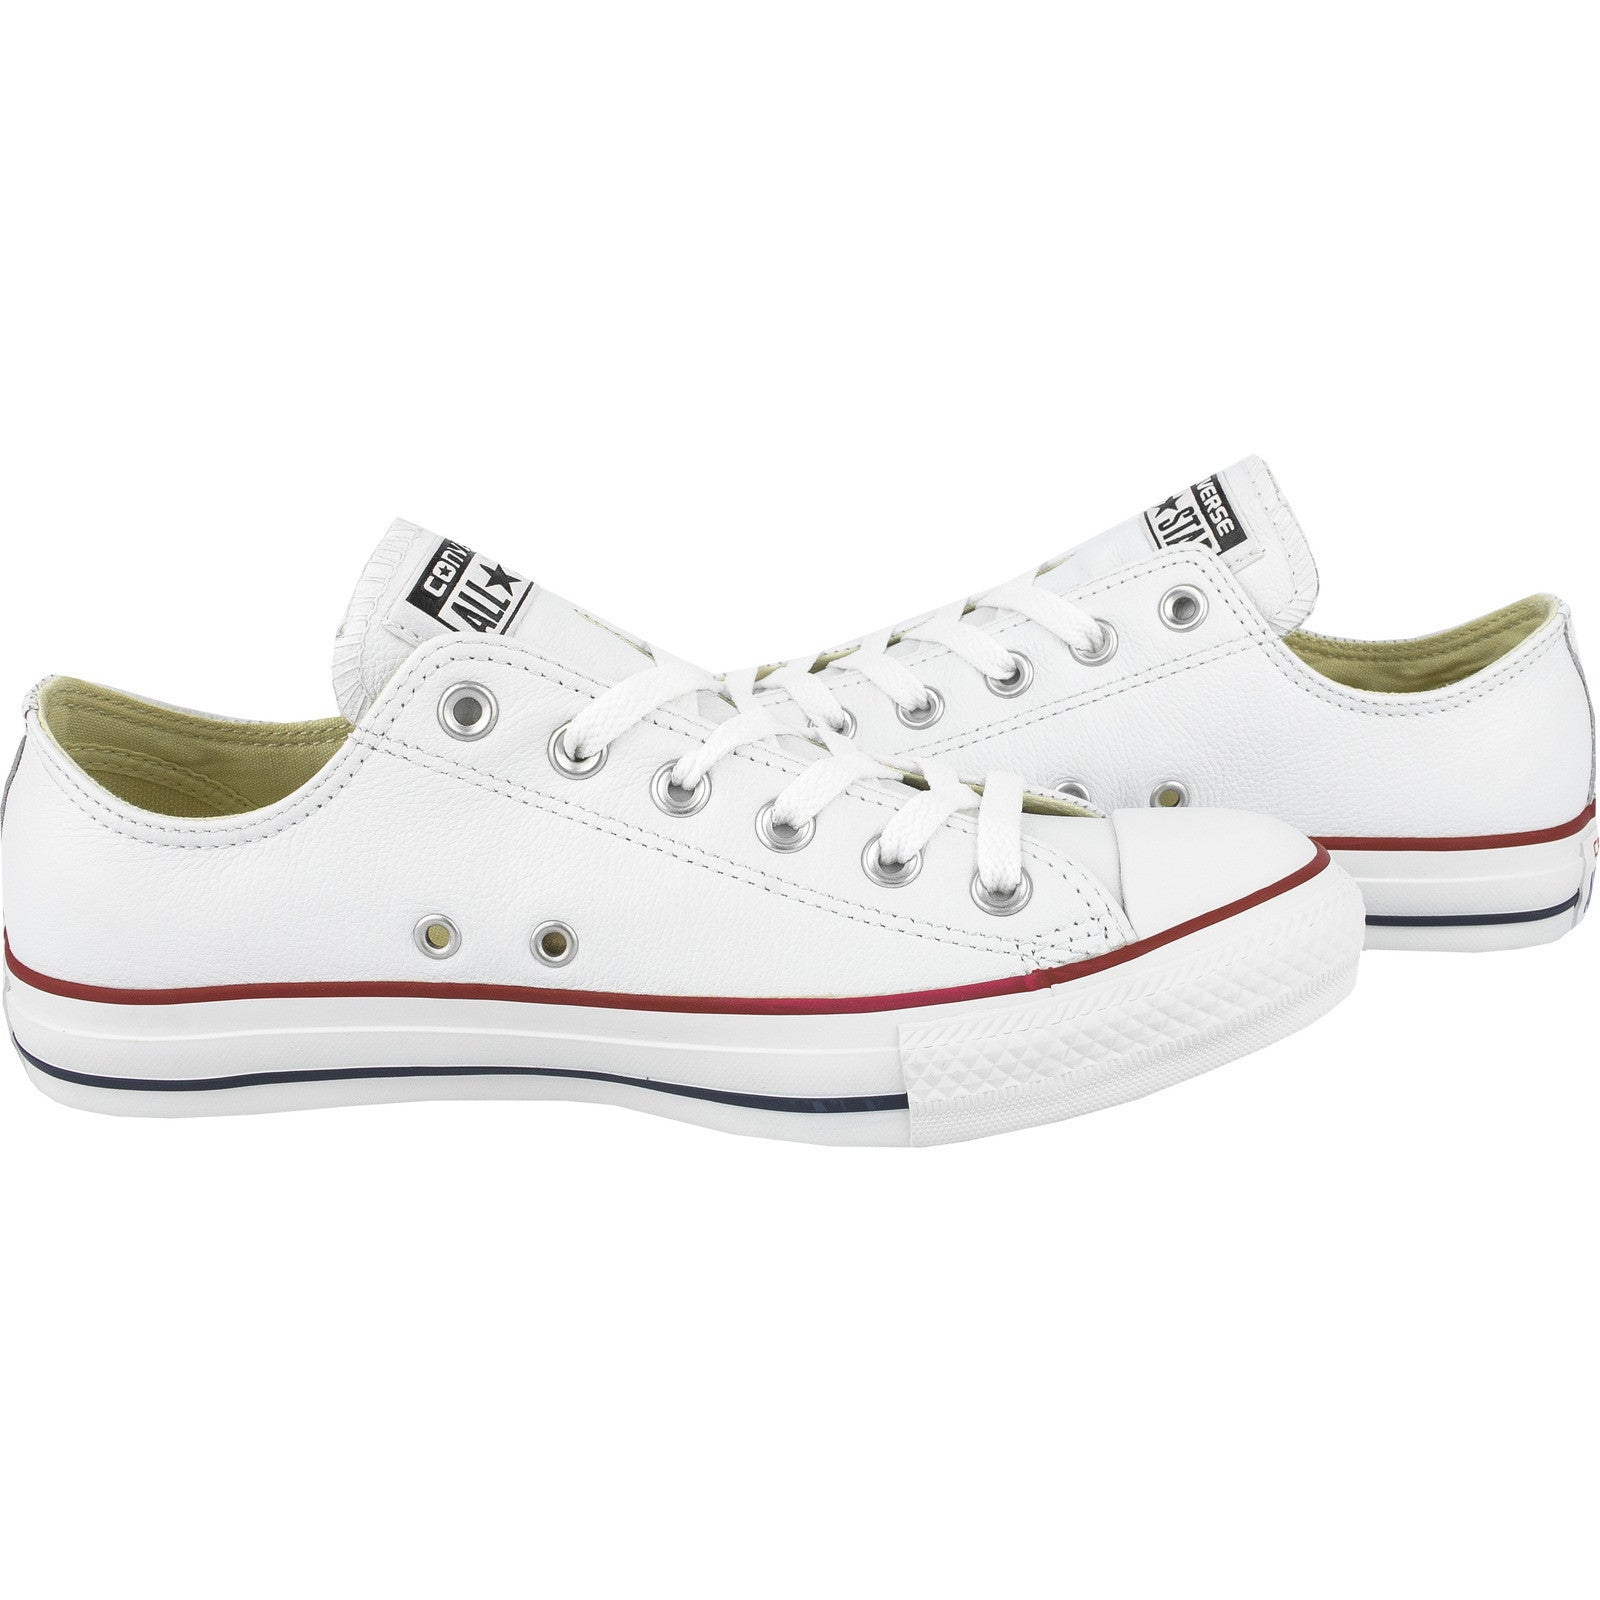 Converse Leather Chuck Taylor Ox Optical White Low 132173